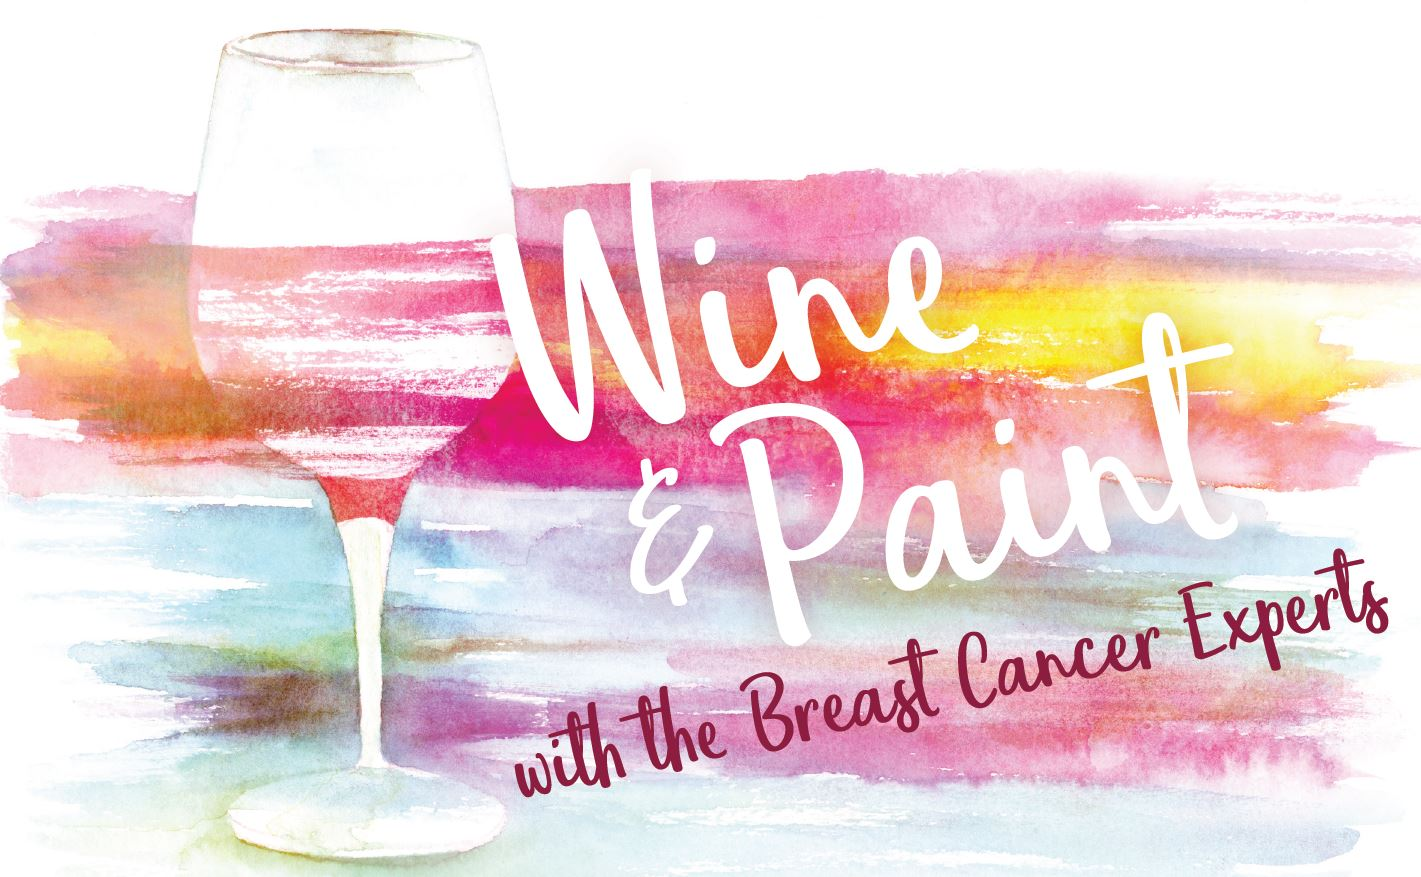 Wine and Painting with Breast Cancer Experts